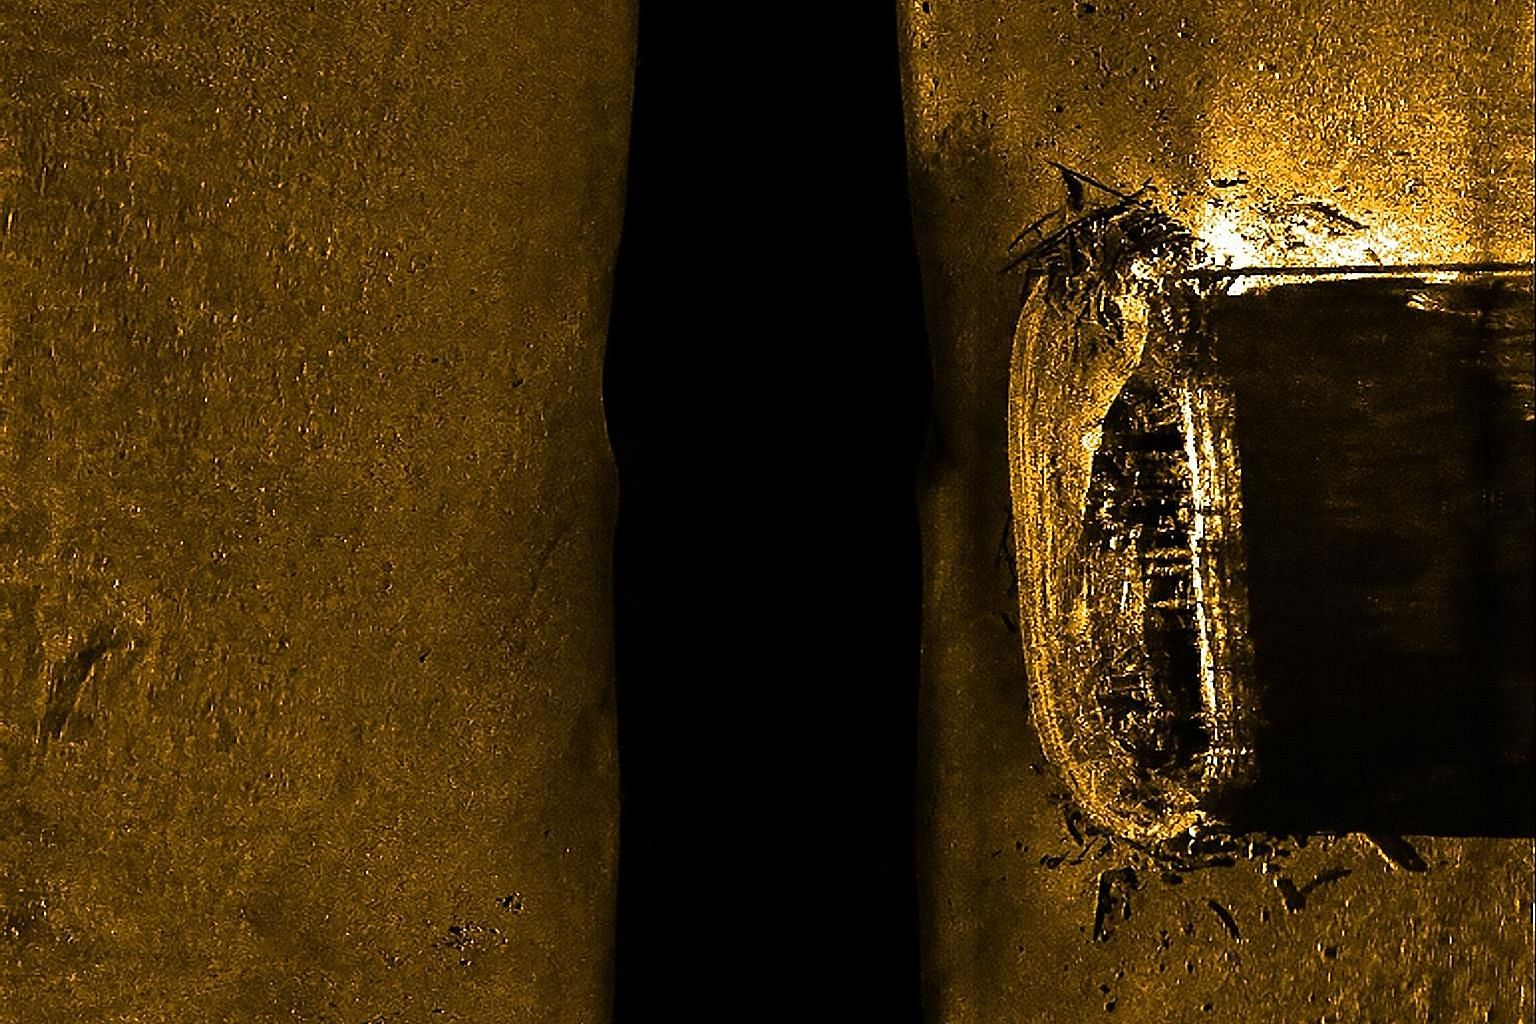 A sonar scan of Arctic explorer John Franklin's lost ship, HMS Erebus, on the ocean floor. A new study warns that global warming is hastening the thaw of permafrost and coastal erosion that is threatening thousands of Arctic archaeological sites in C